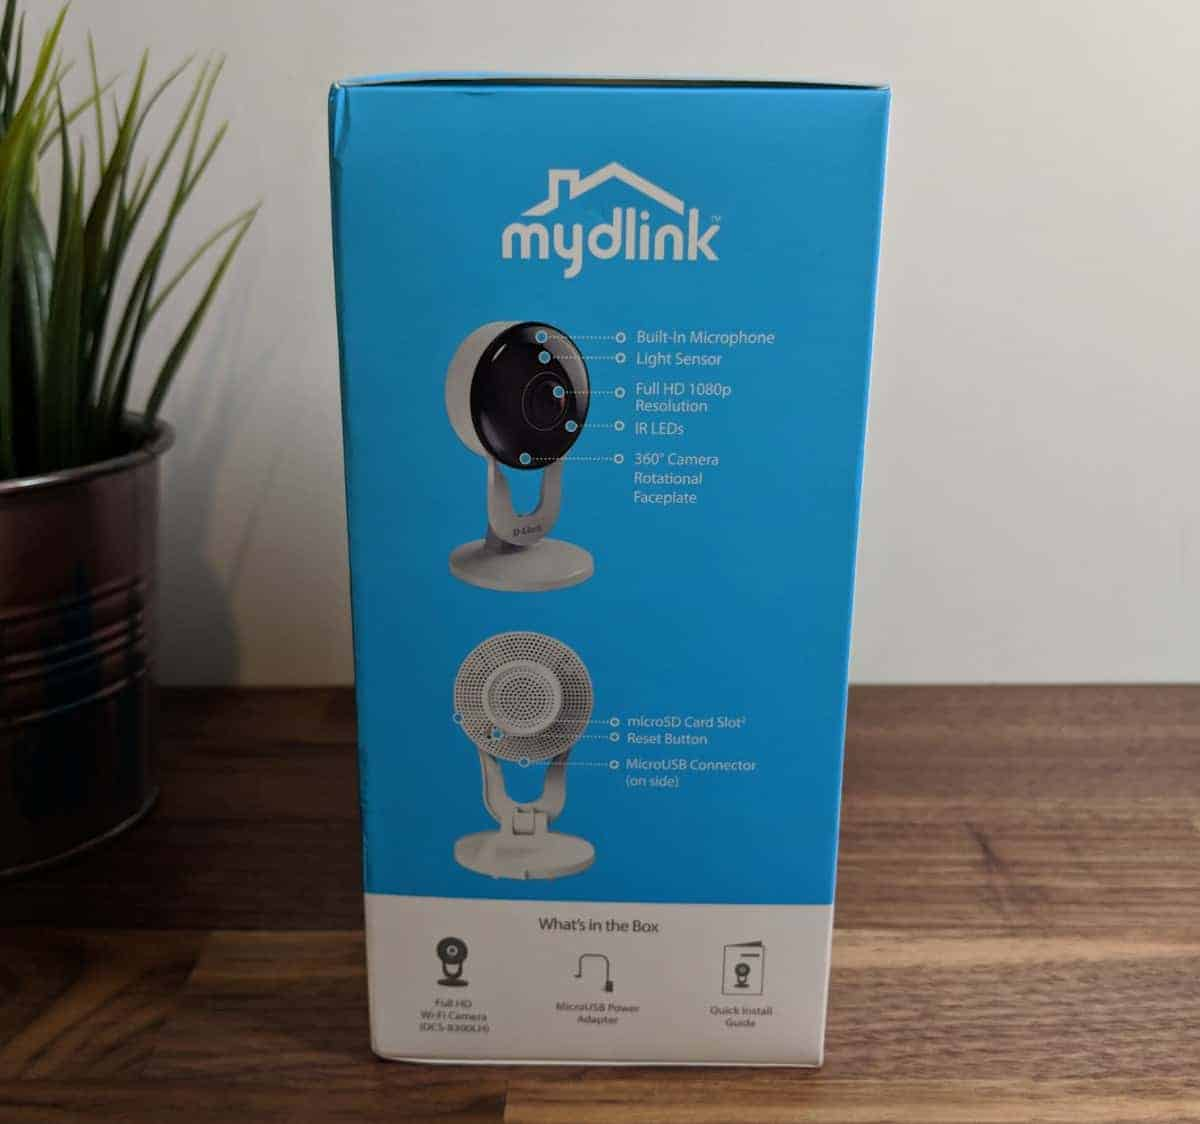 Dlink-DCS-8300lh-Photos-17 D-Link DCS-8300LH Wi-Fi Camera Review